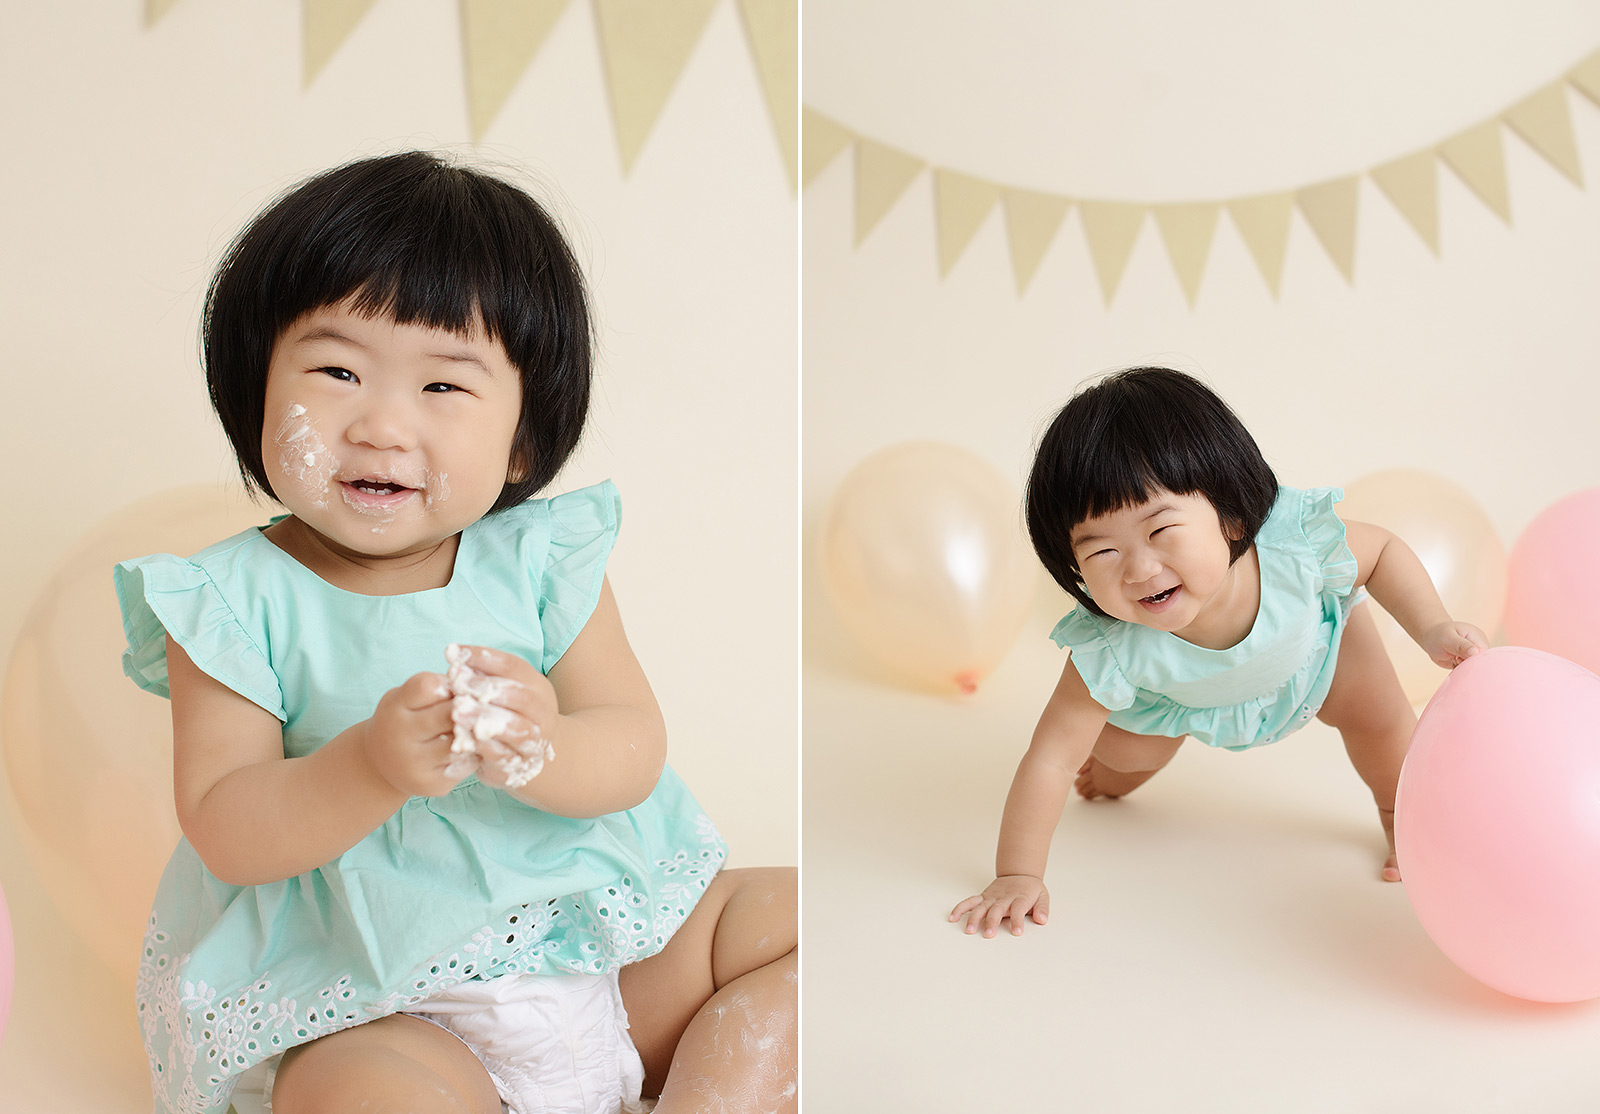 Baby girl laughing and playing with balloons and frosting during cake smash